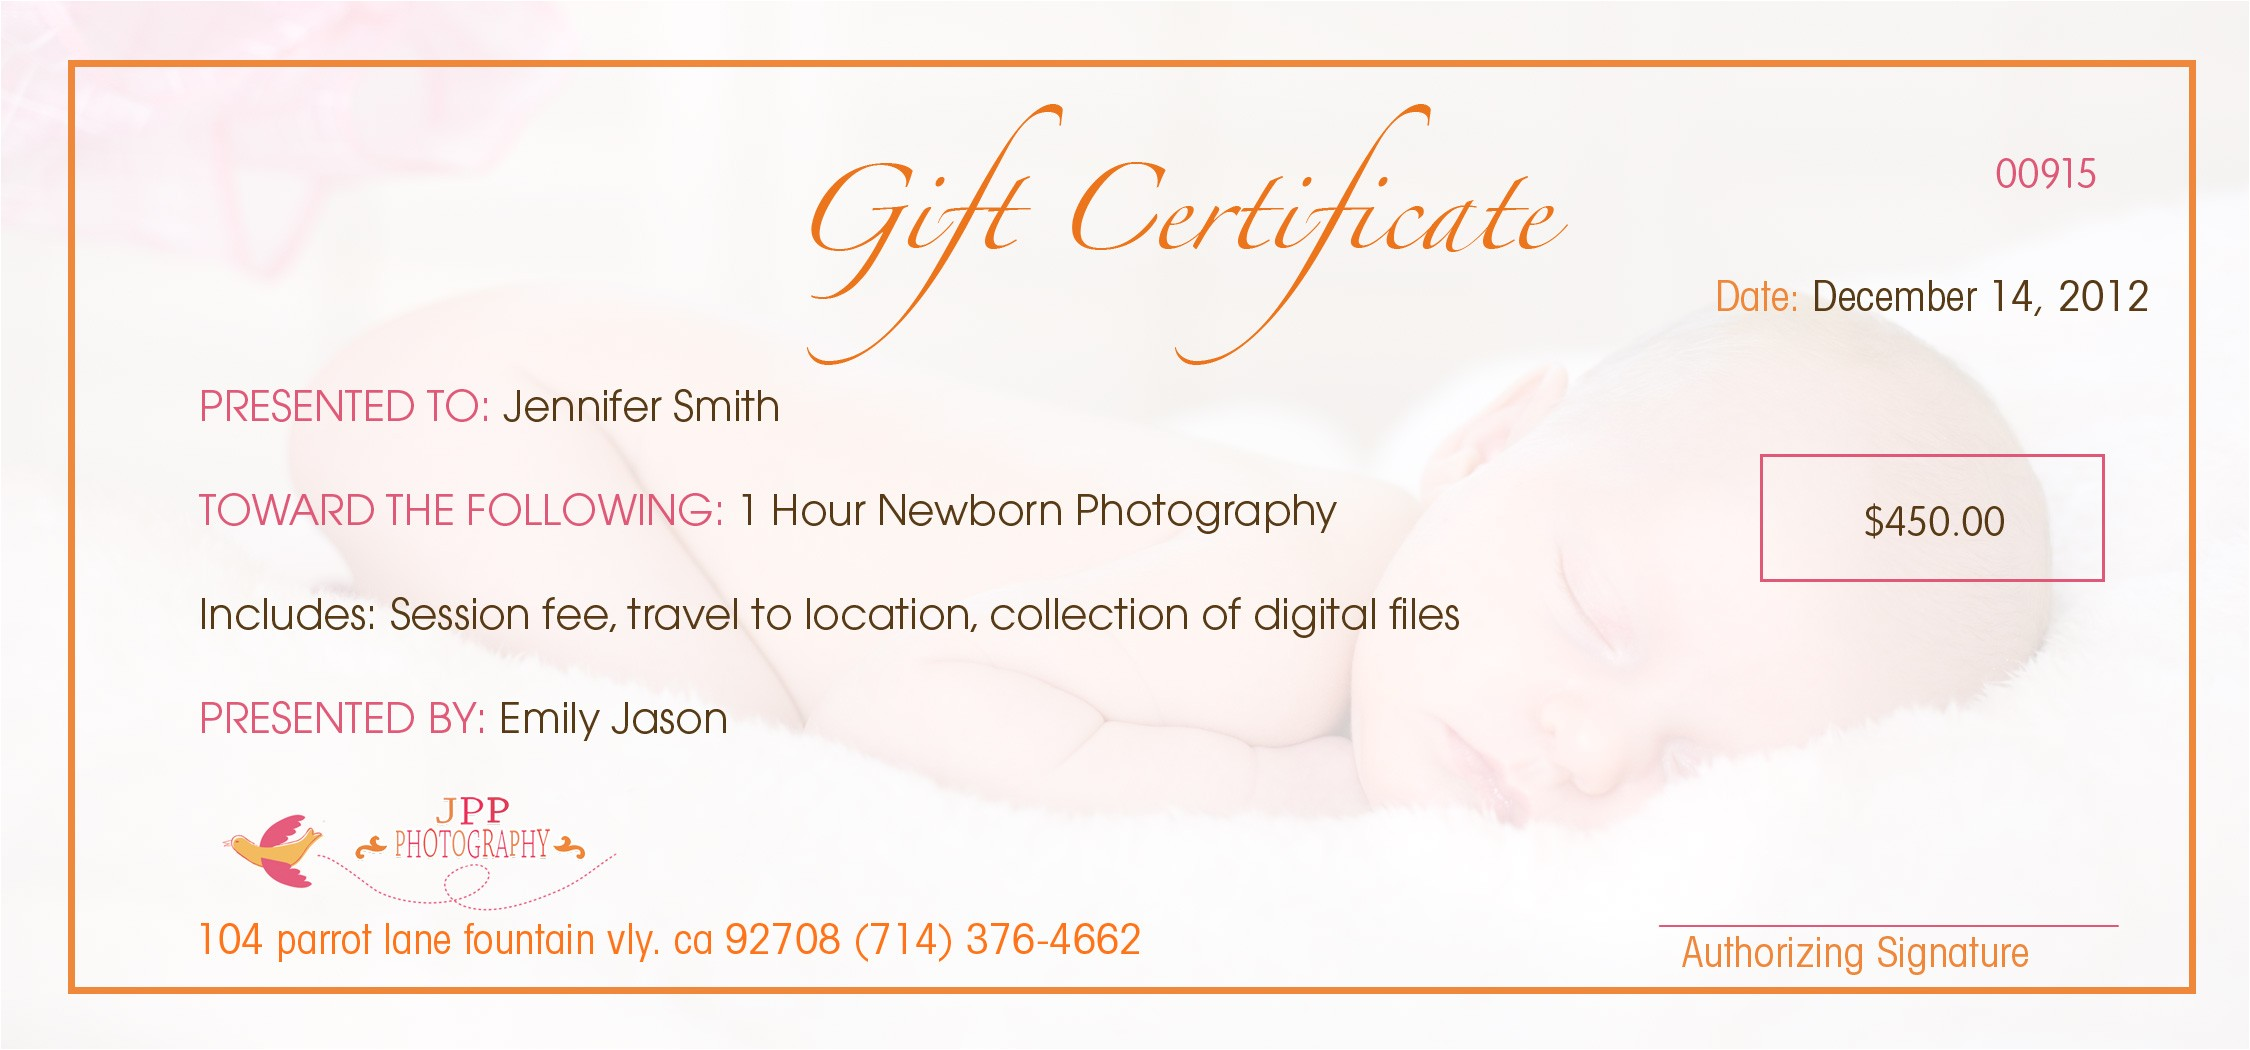 Wording for Gift Certificate Template Gift Certificate Wording Cake Ideas and Designs